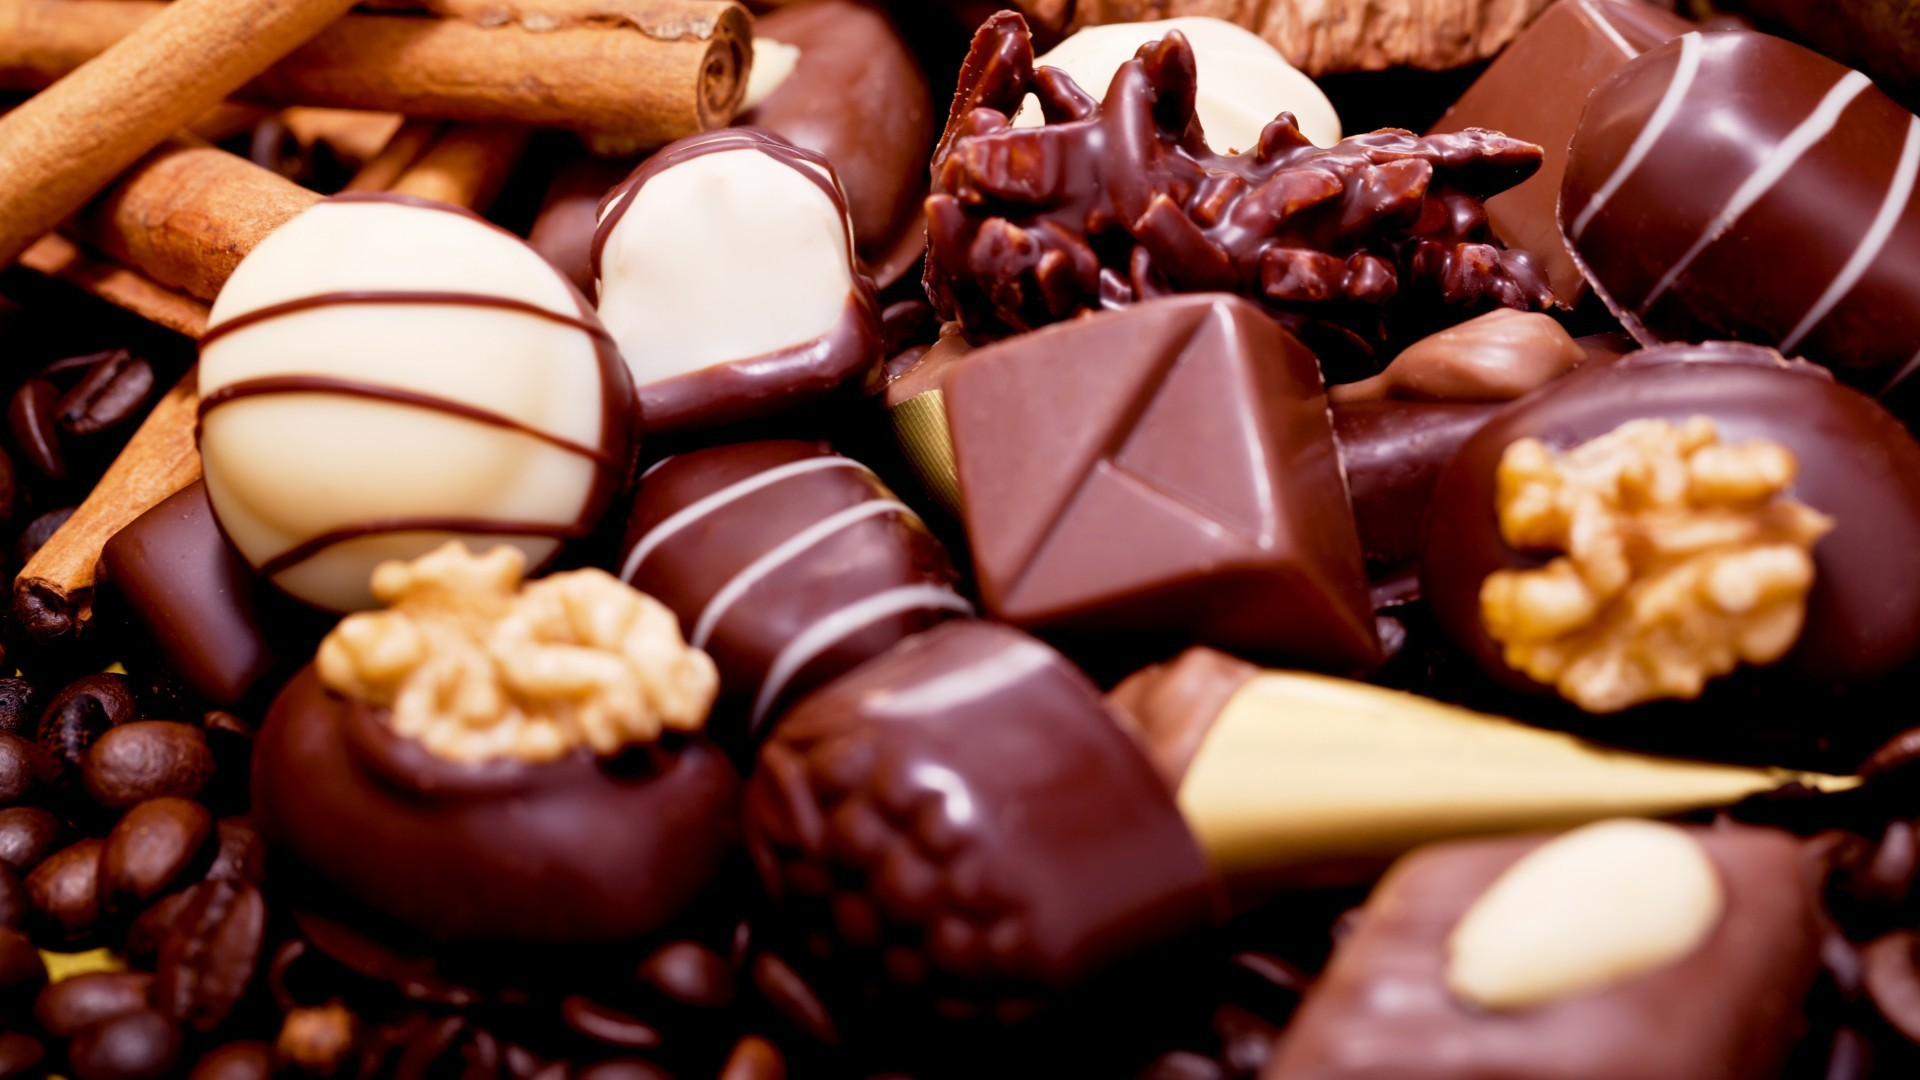 1920x1080 Assorted chocolate candy wallpapers and images - wallpapers, pictures .